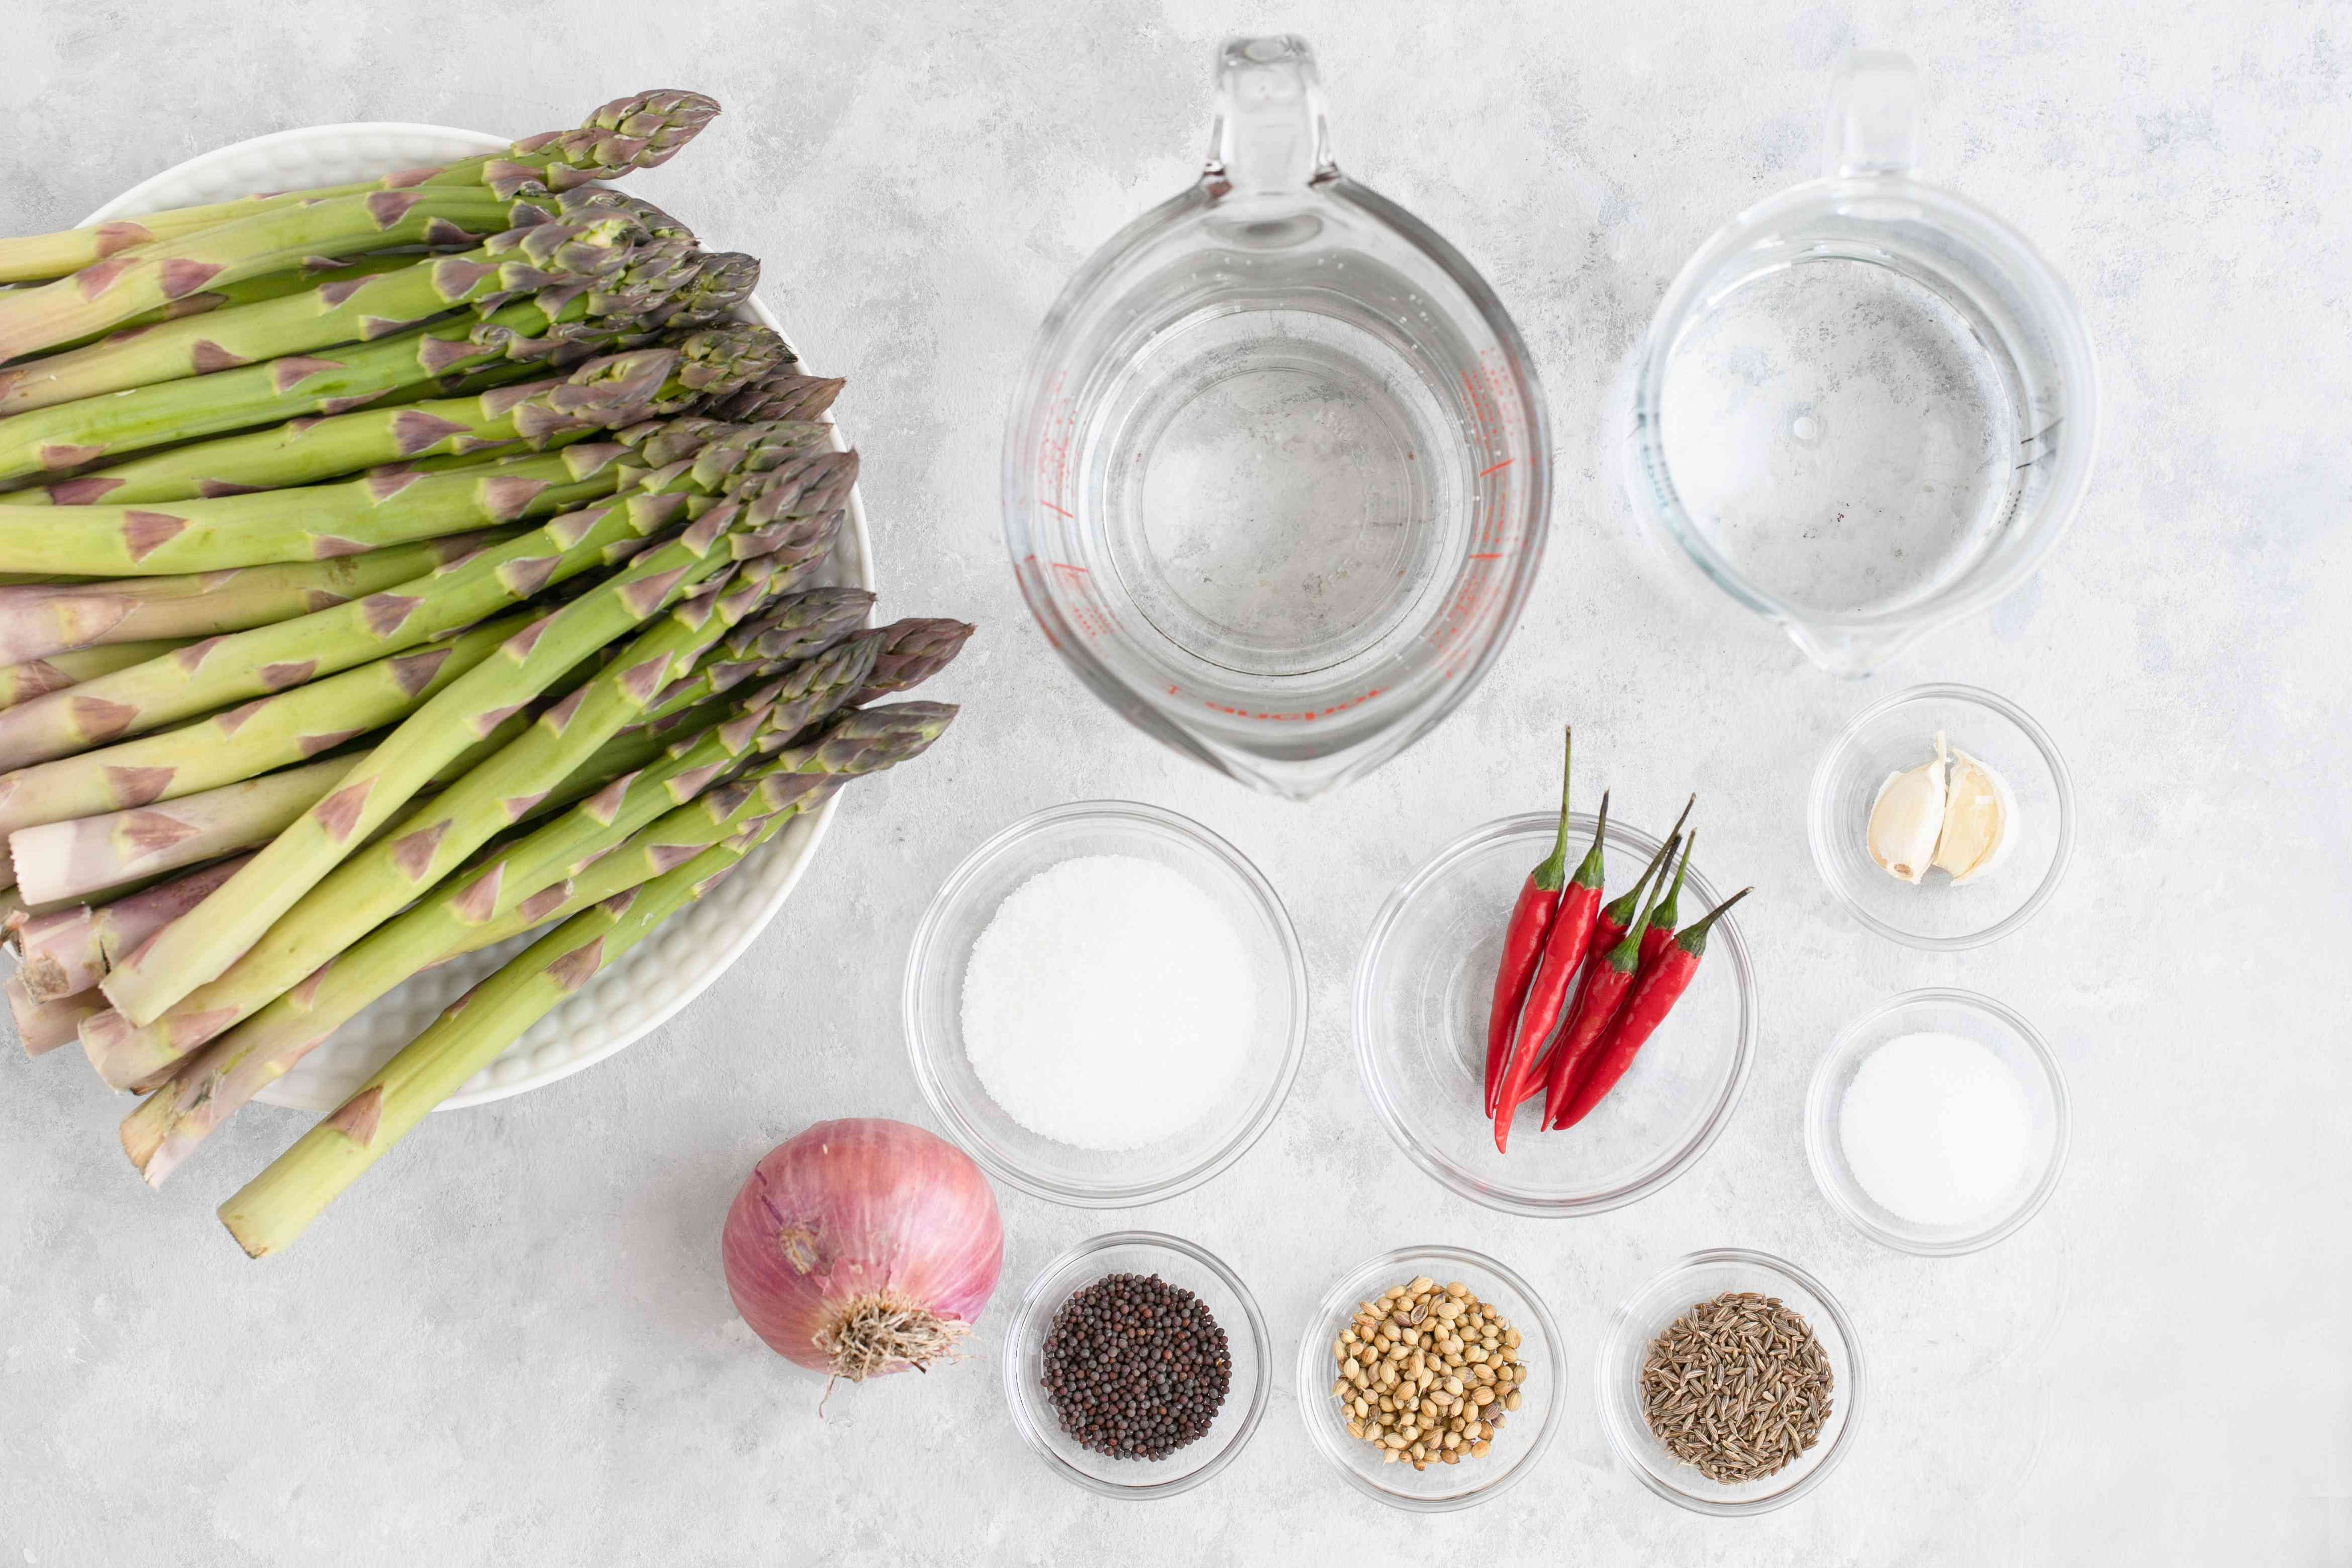 Ingredients for spicy pickled asparagus